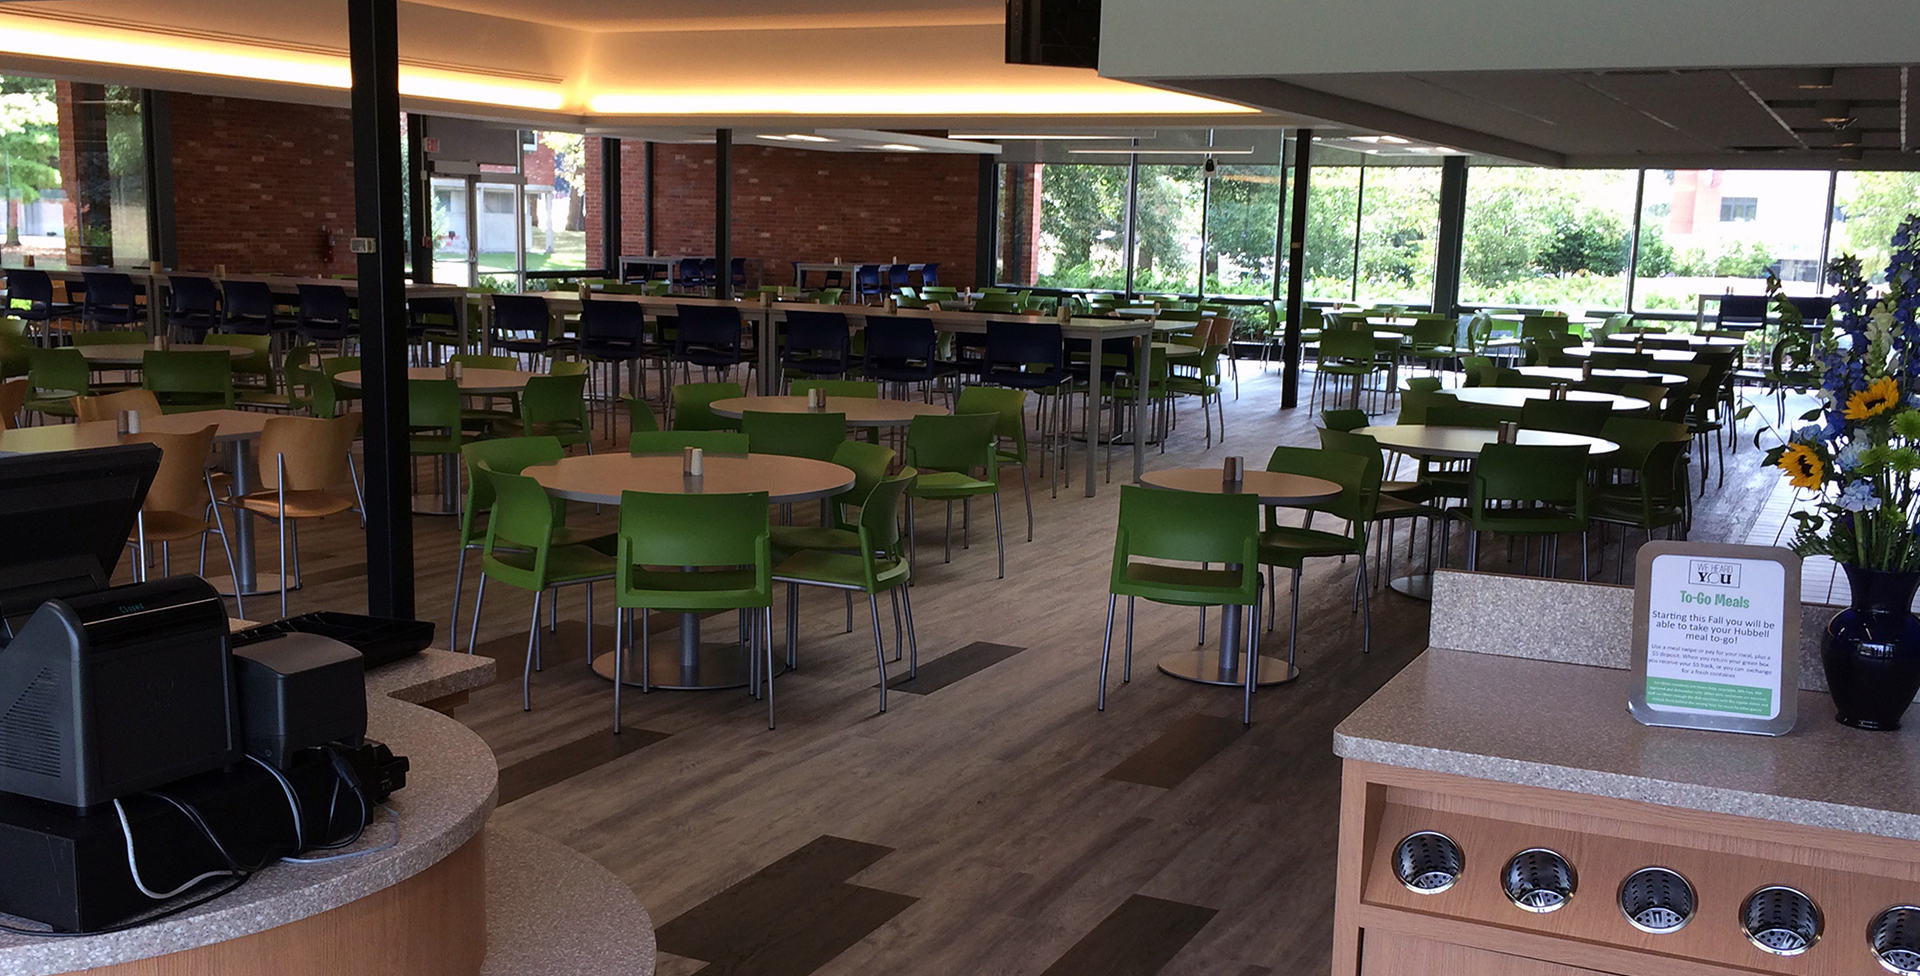 Hubbell Dining Hall image